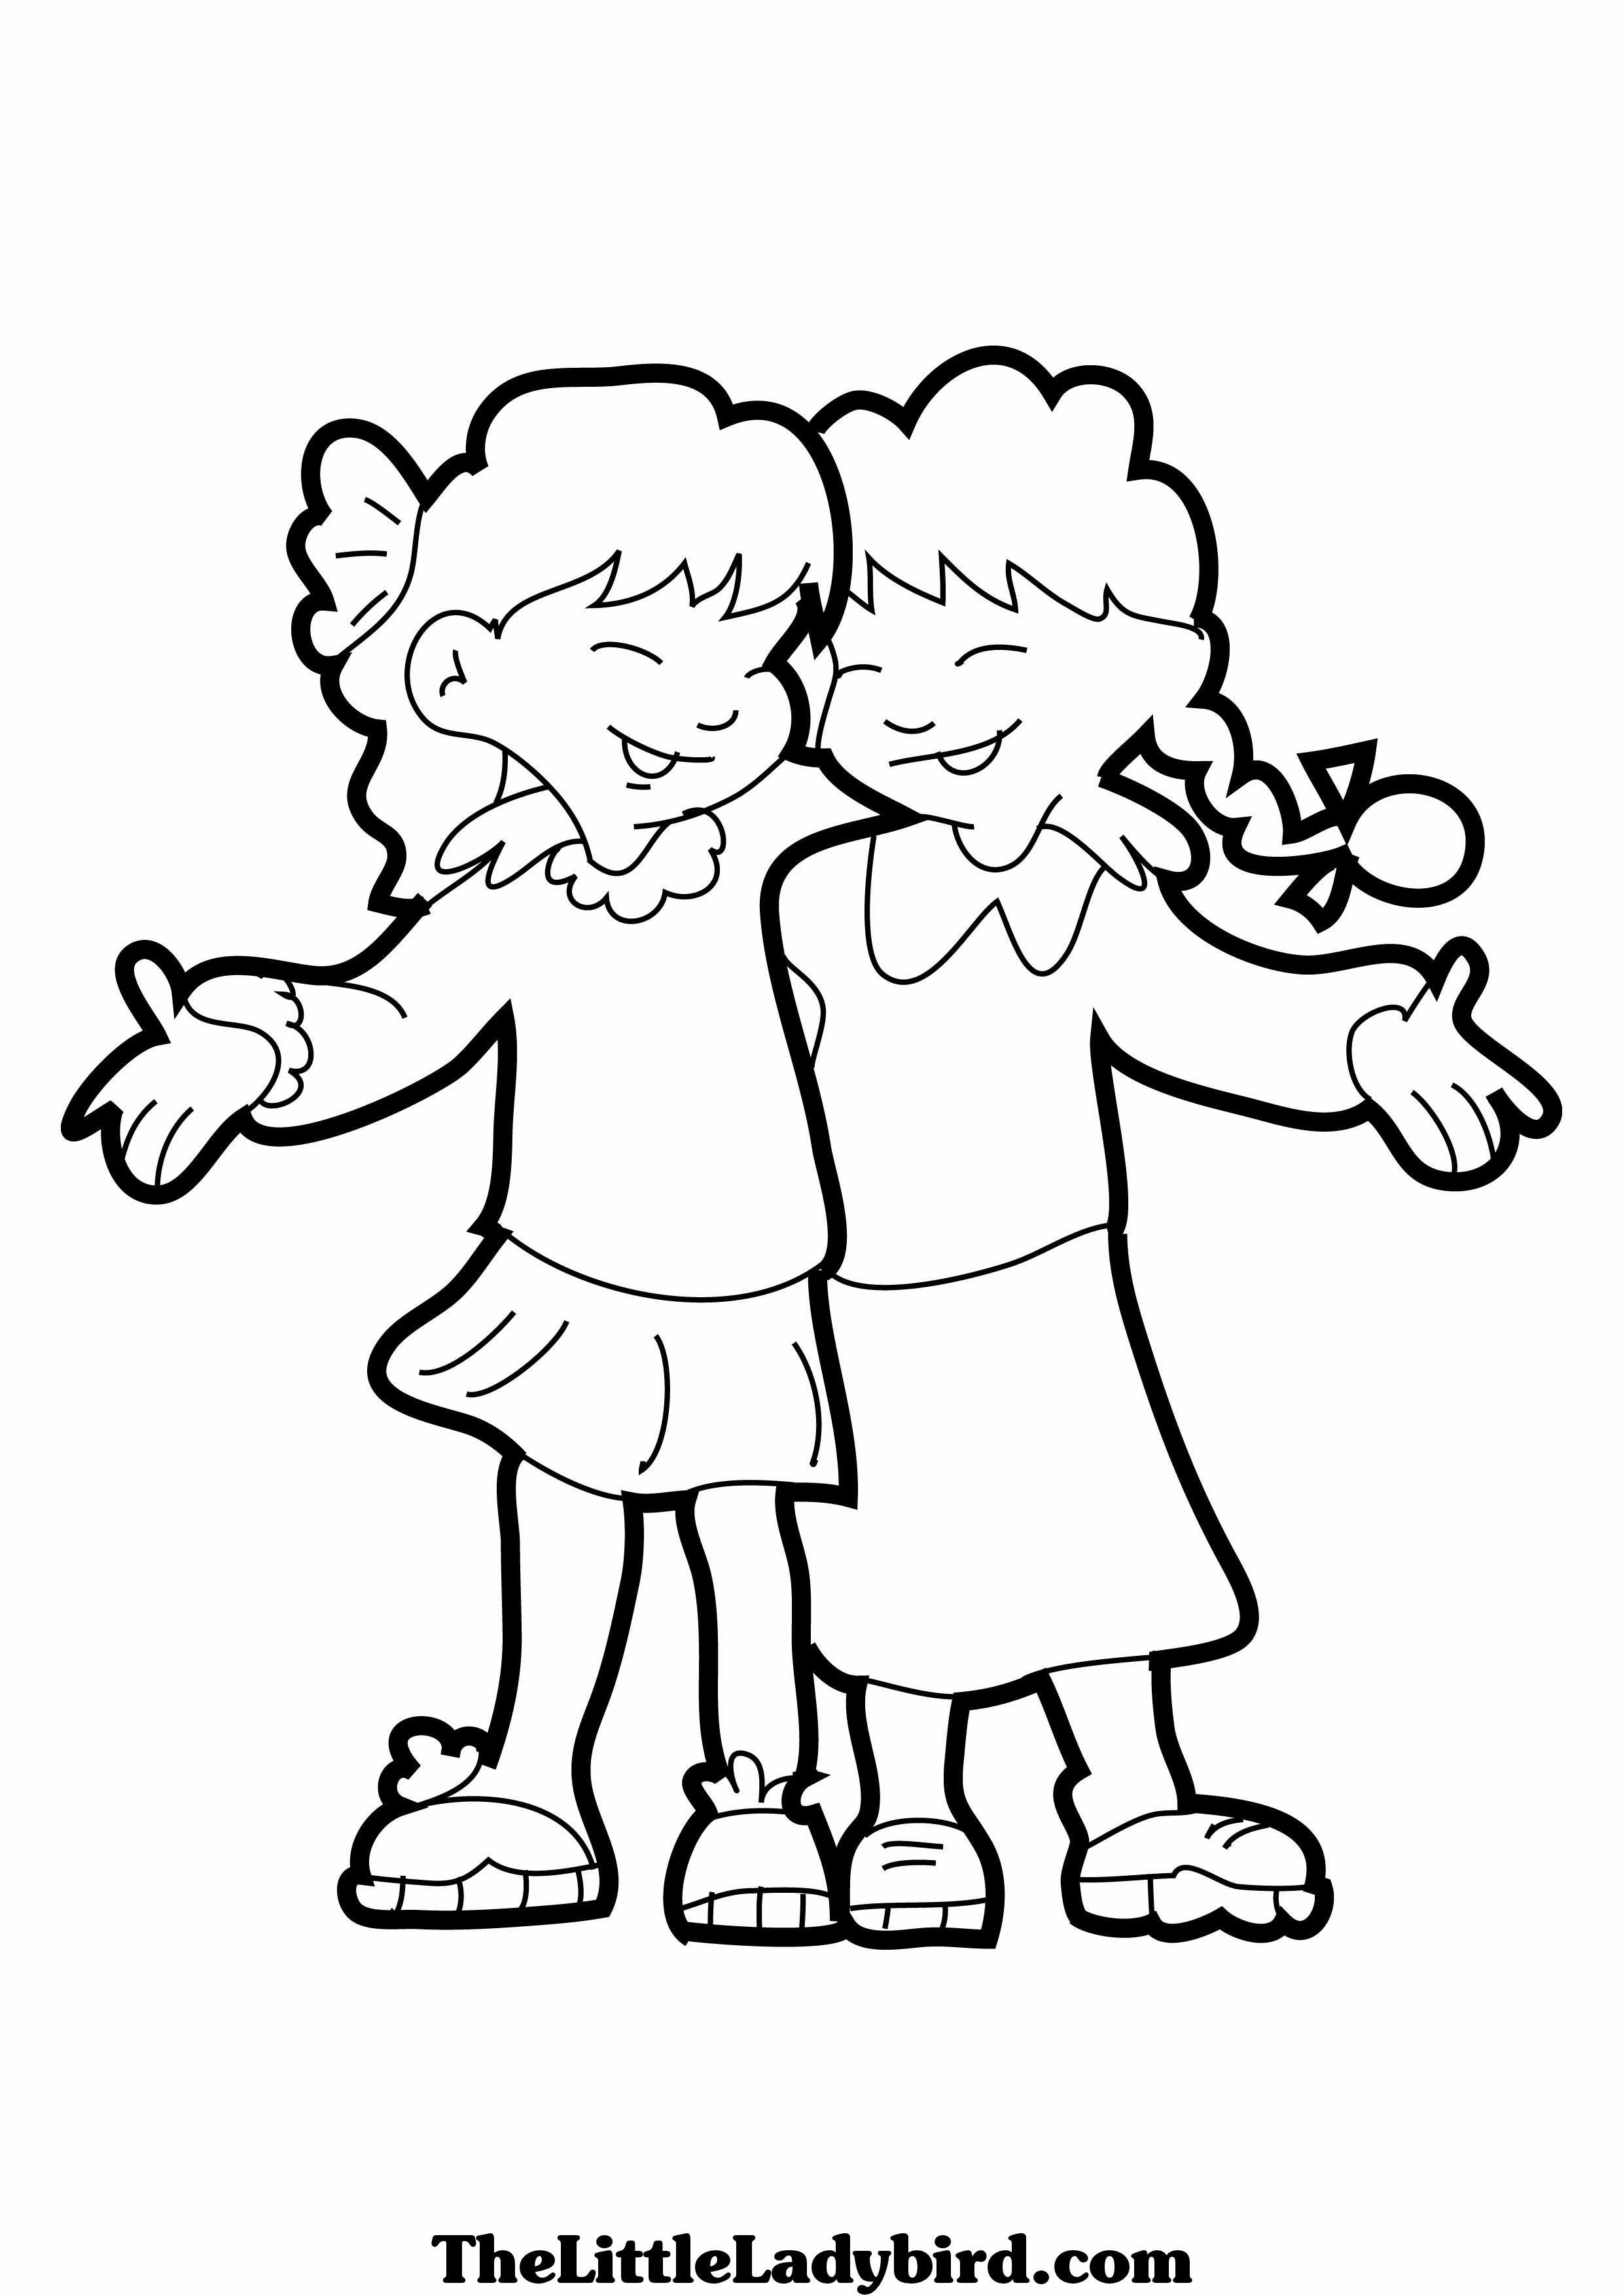 Free Friendship Coloring Pages At Getdrawings